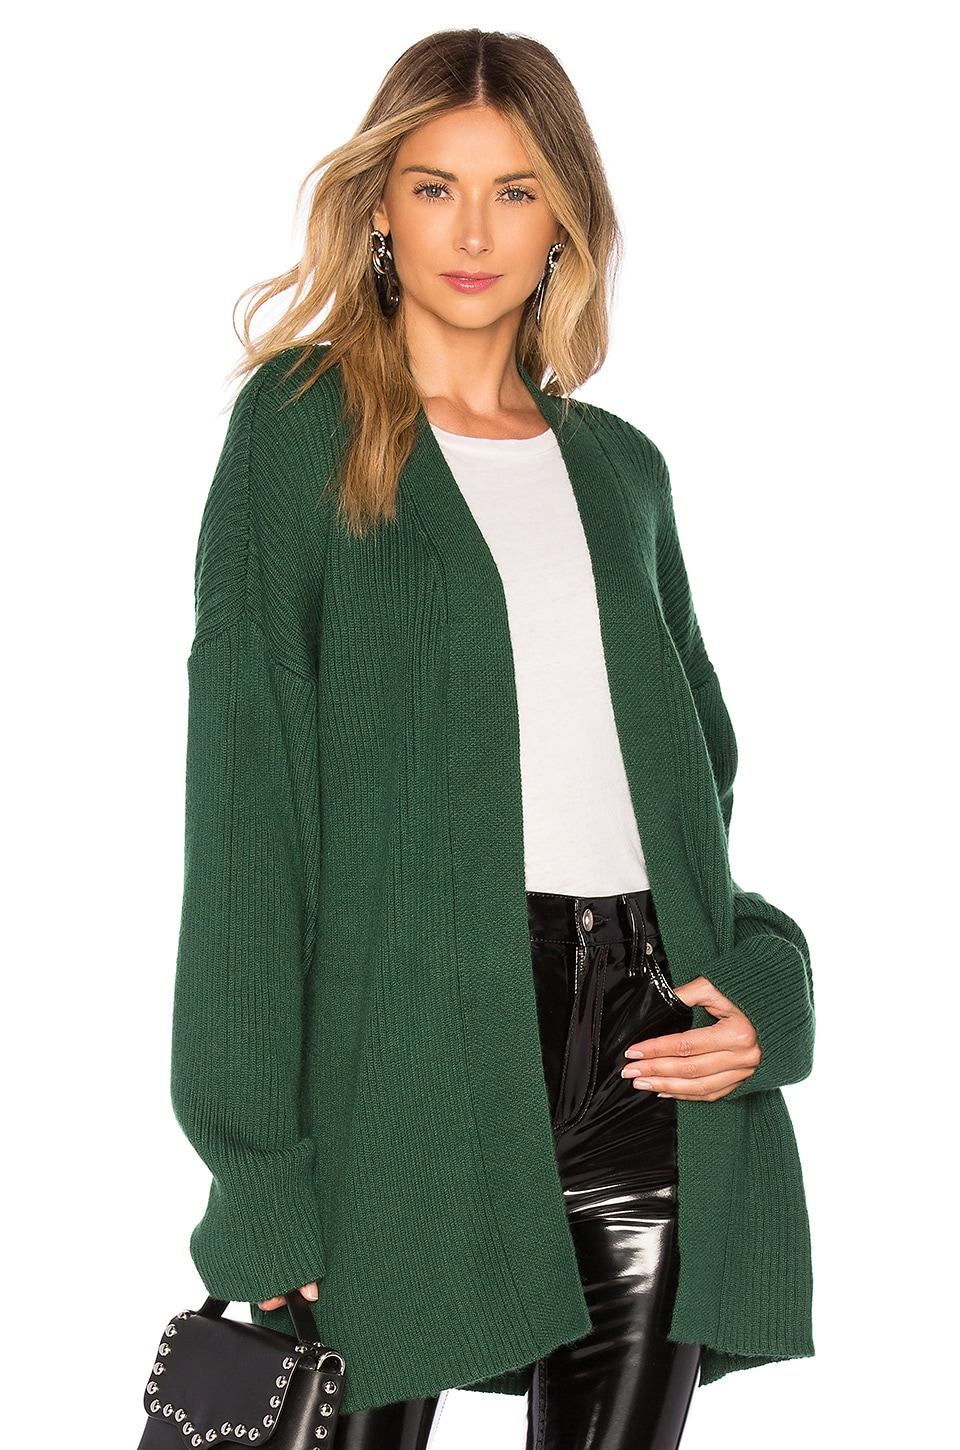 L'Academie Hannah Wrap Sweater in Emerald